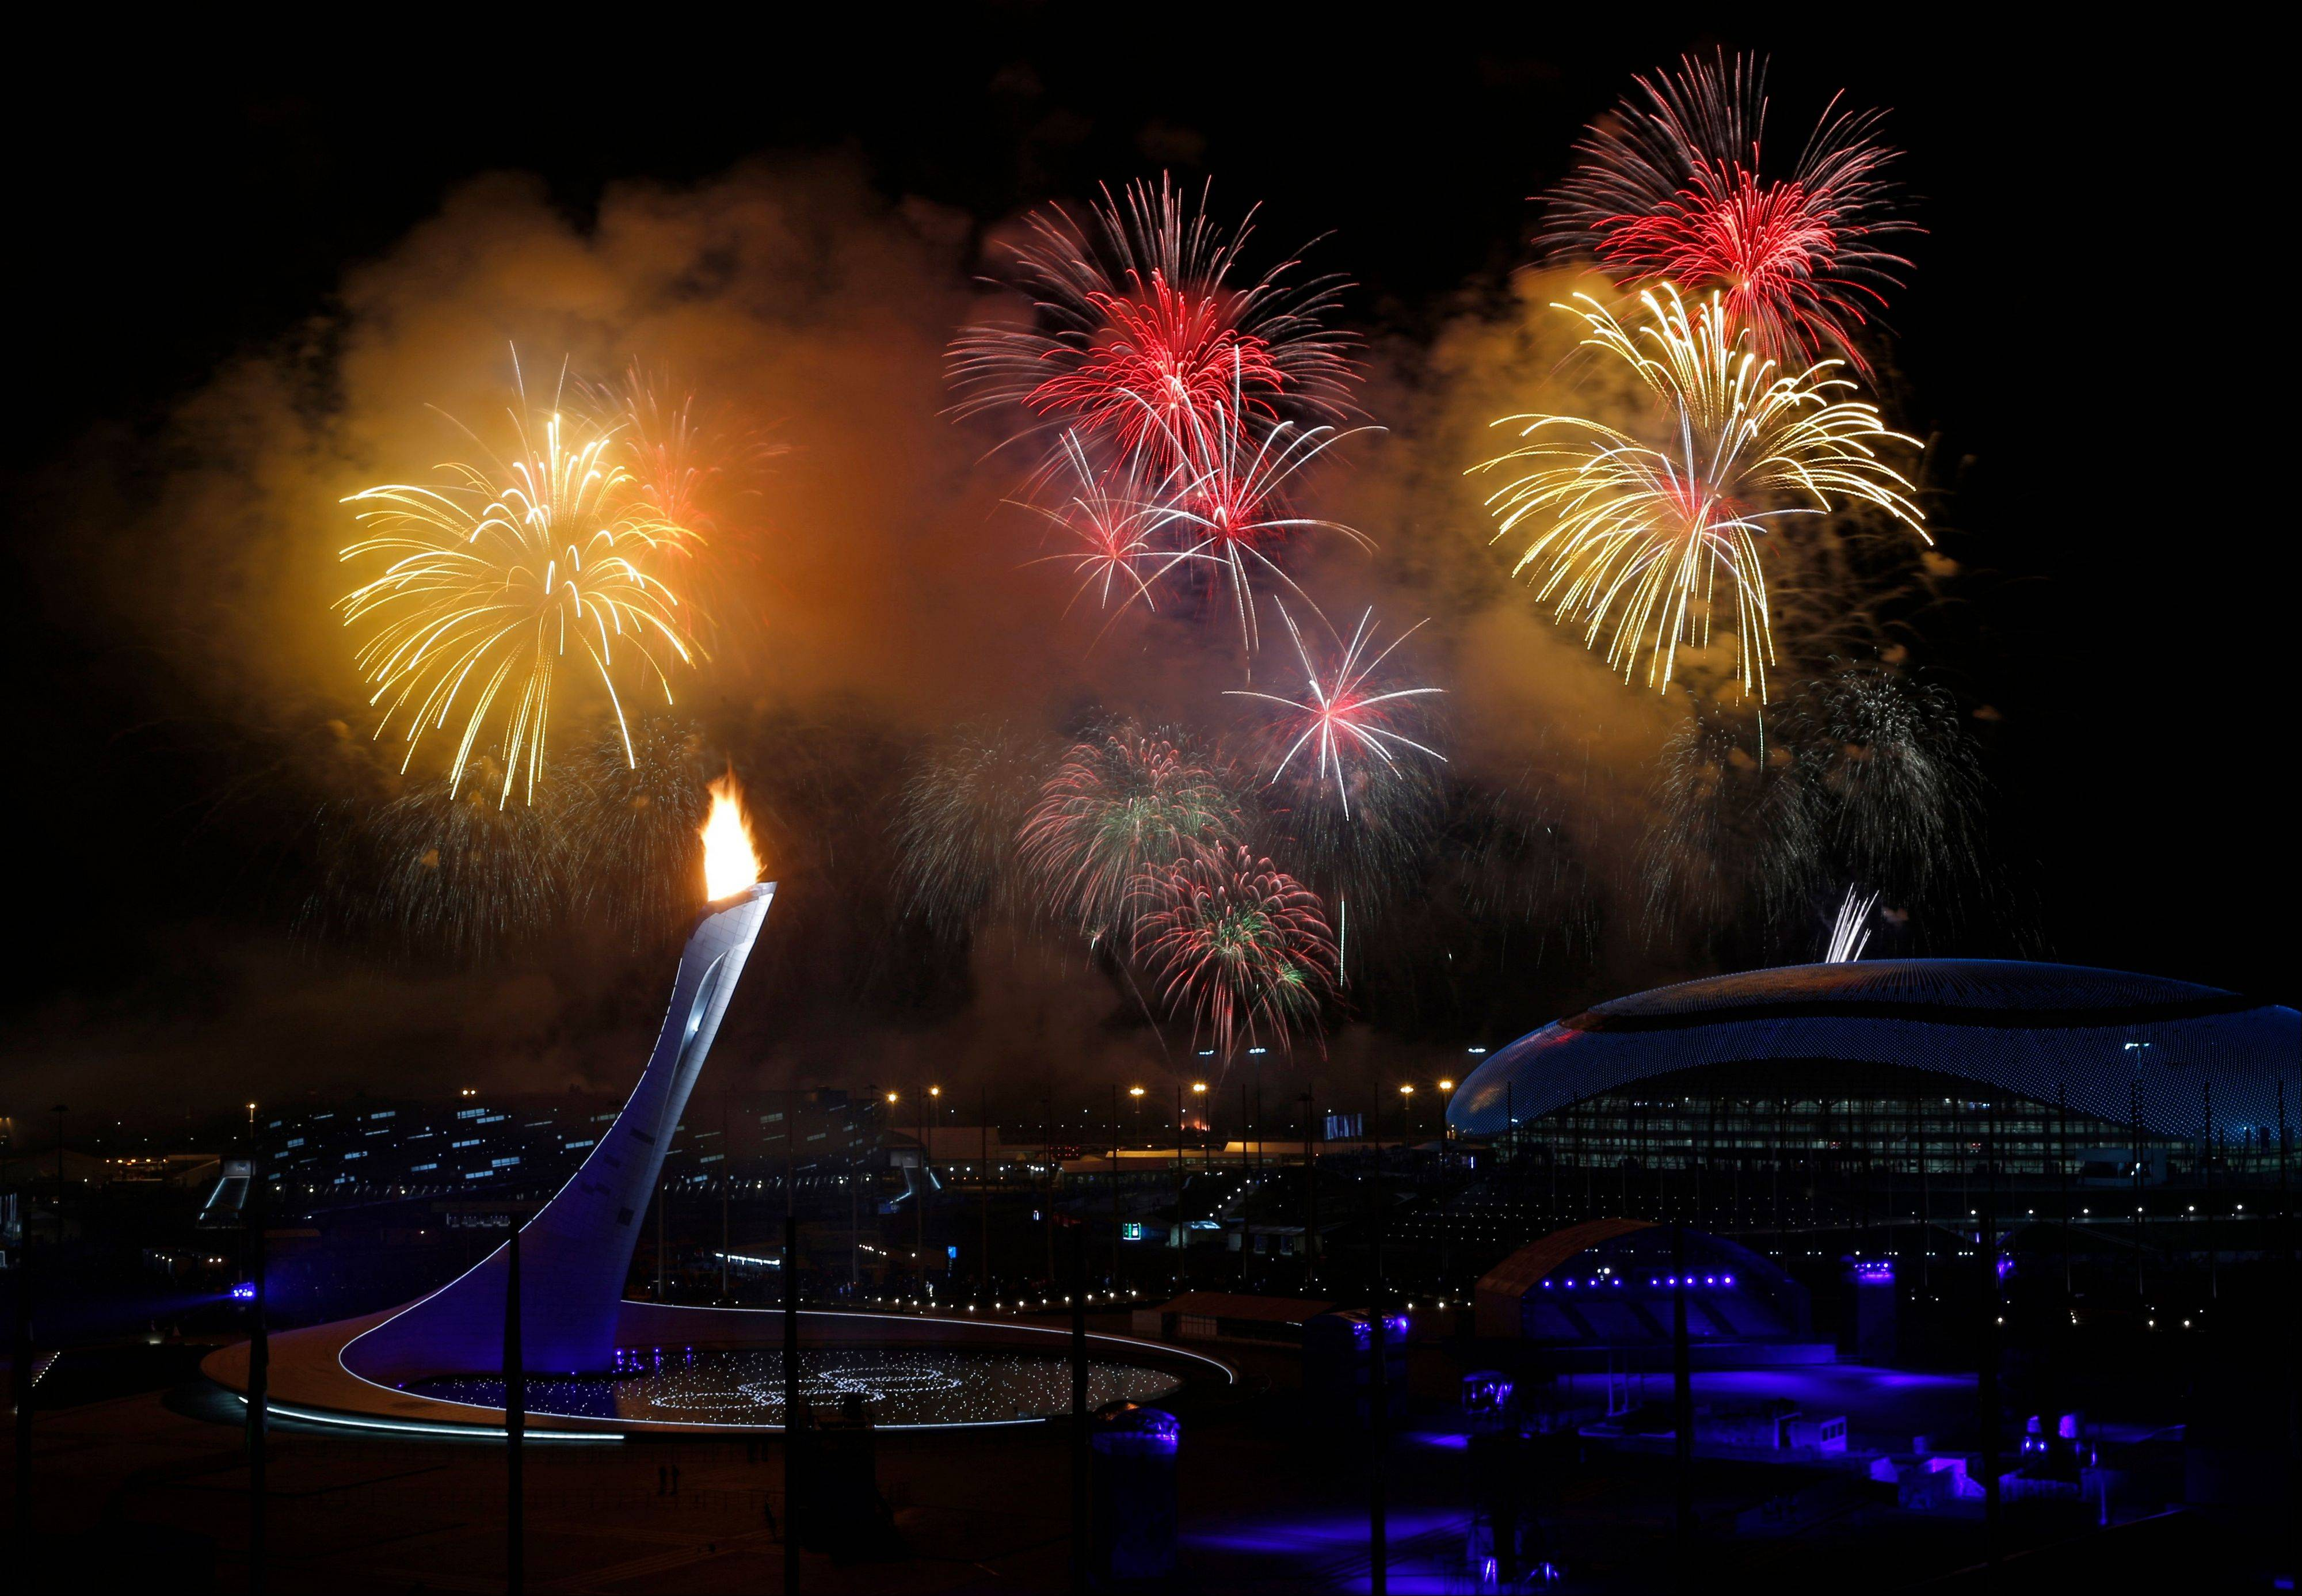 Fireworks are seen over the Olympic Cauldron during the opening ceremony .